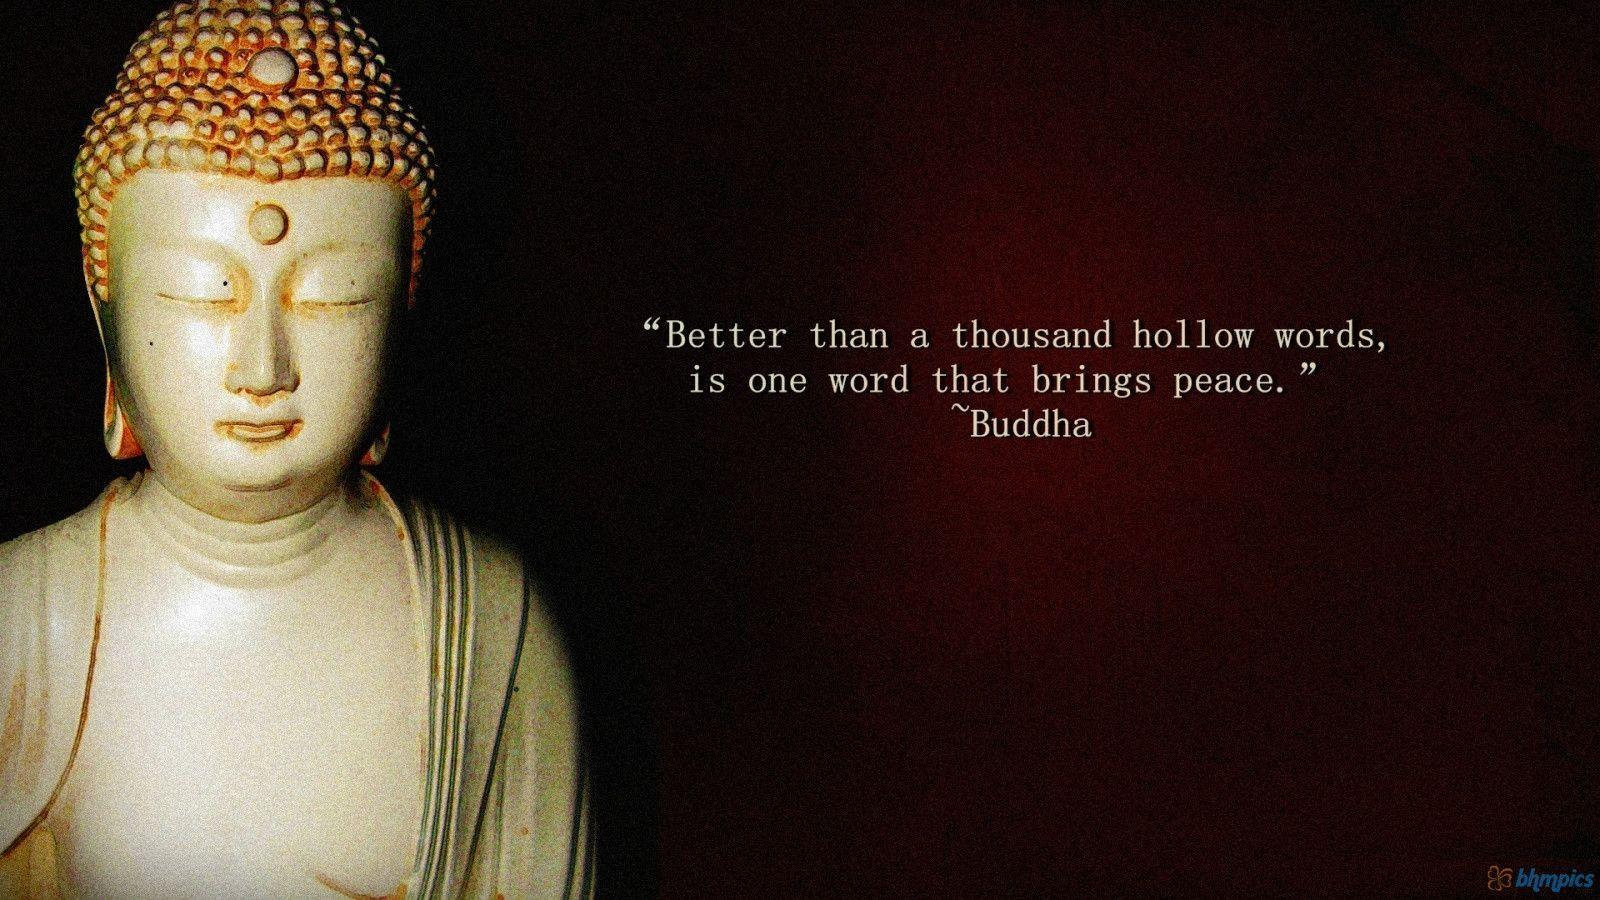 buddha quotes wallpapers wallpaper cave. Black Bedroom Furniture Sets. Home Design Ideas